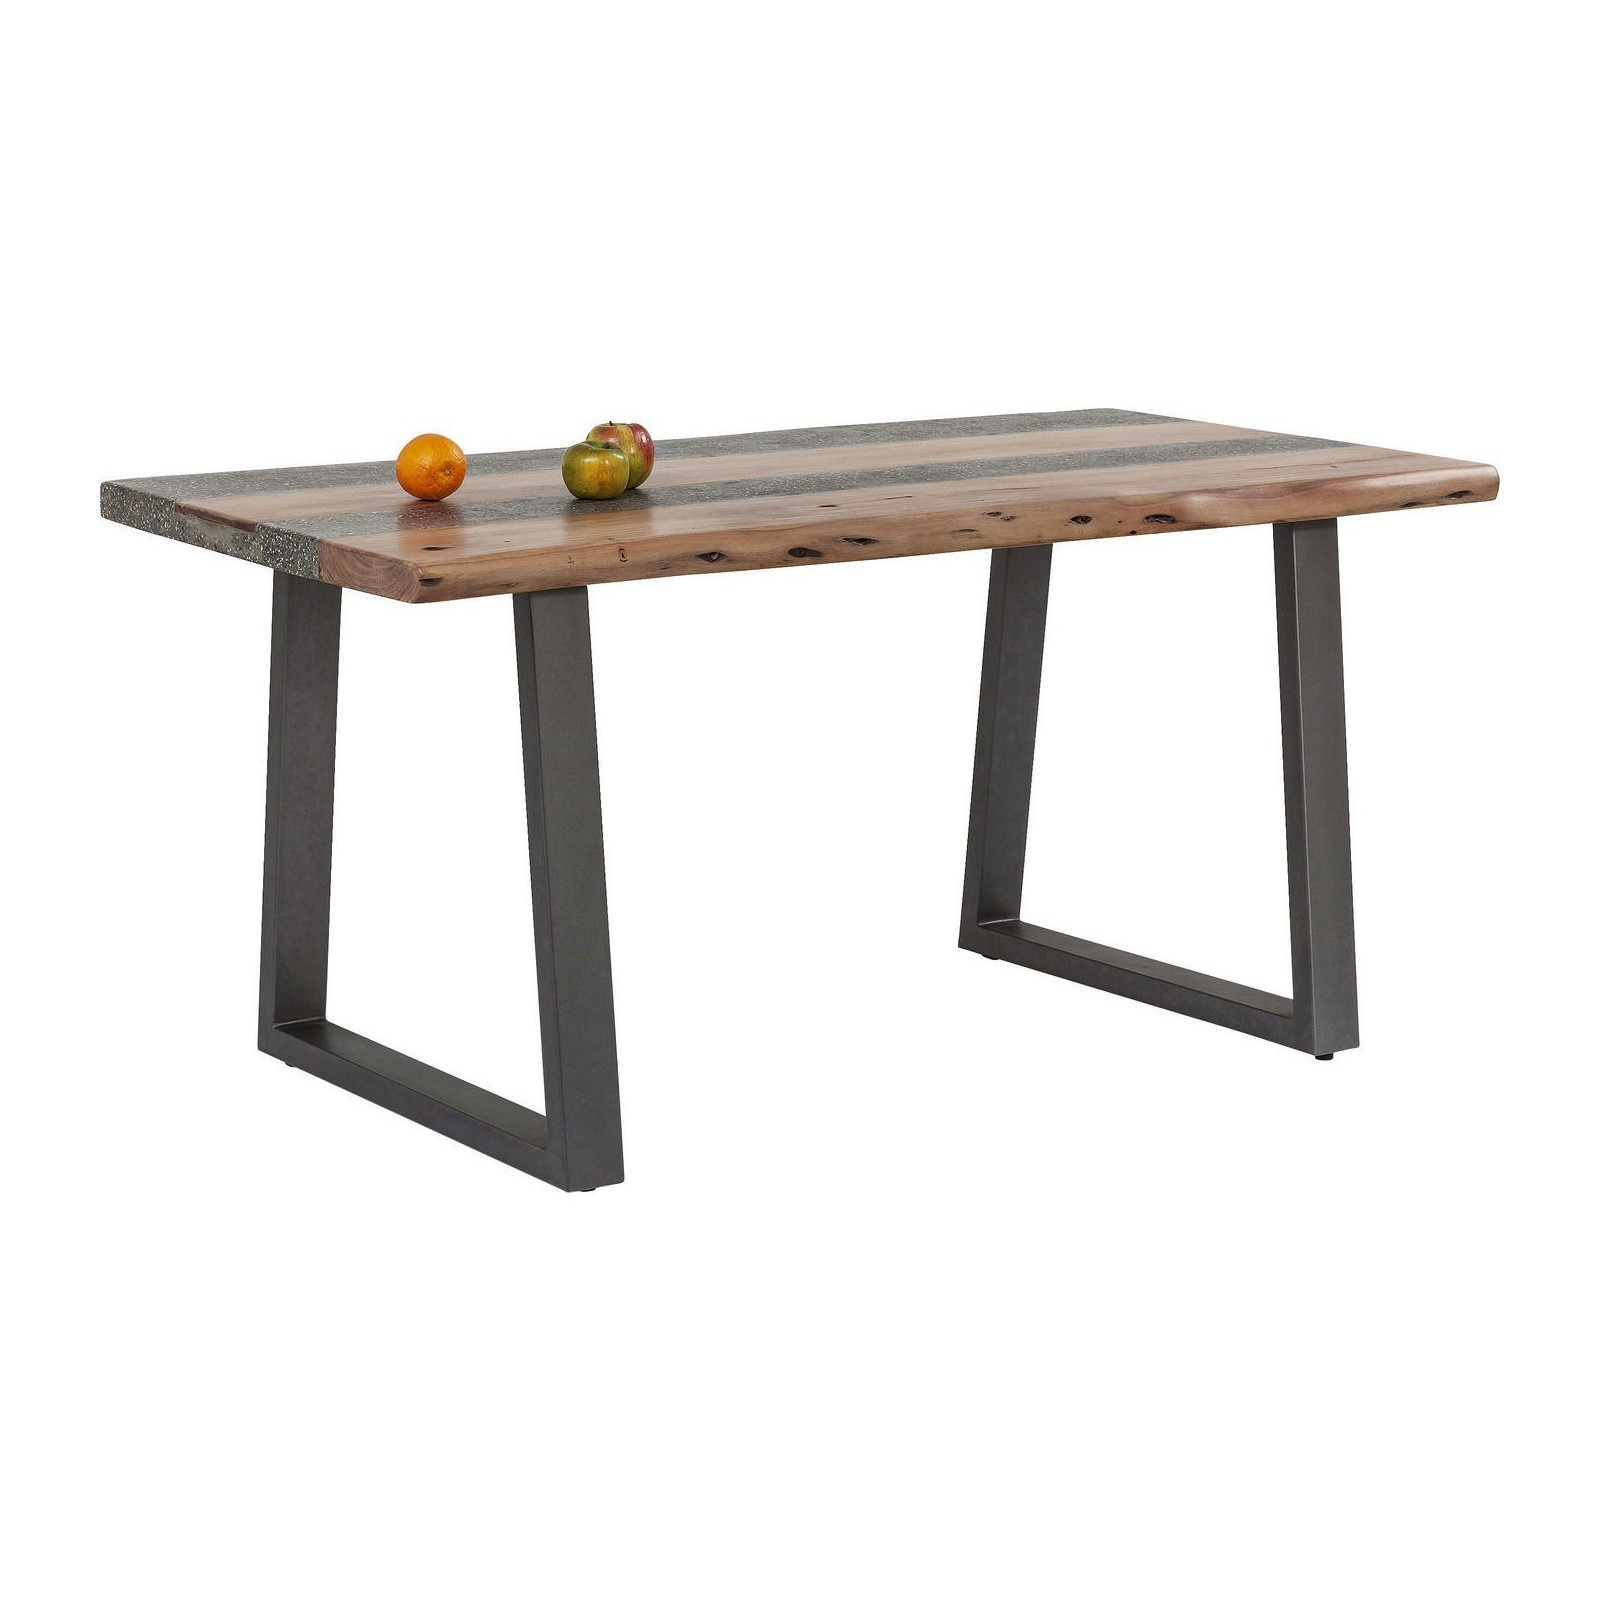 Table rectangulaire avec rallonges EDITO table